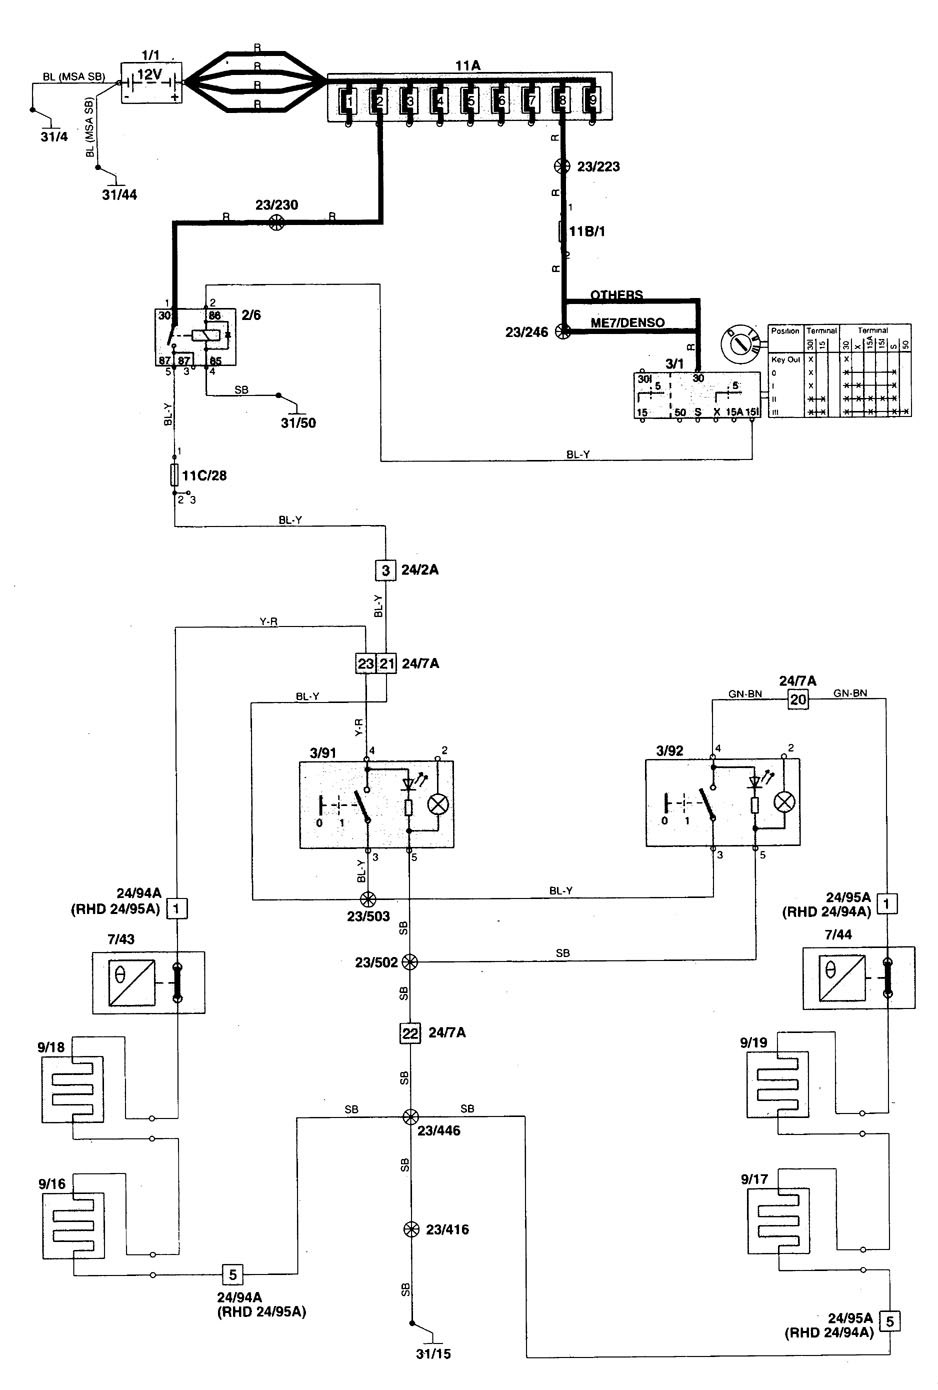 Wiring Diagram Volvo S70 : Volvo s  wiring diagrams heated seats